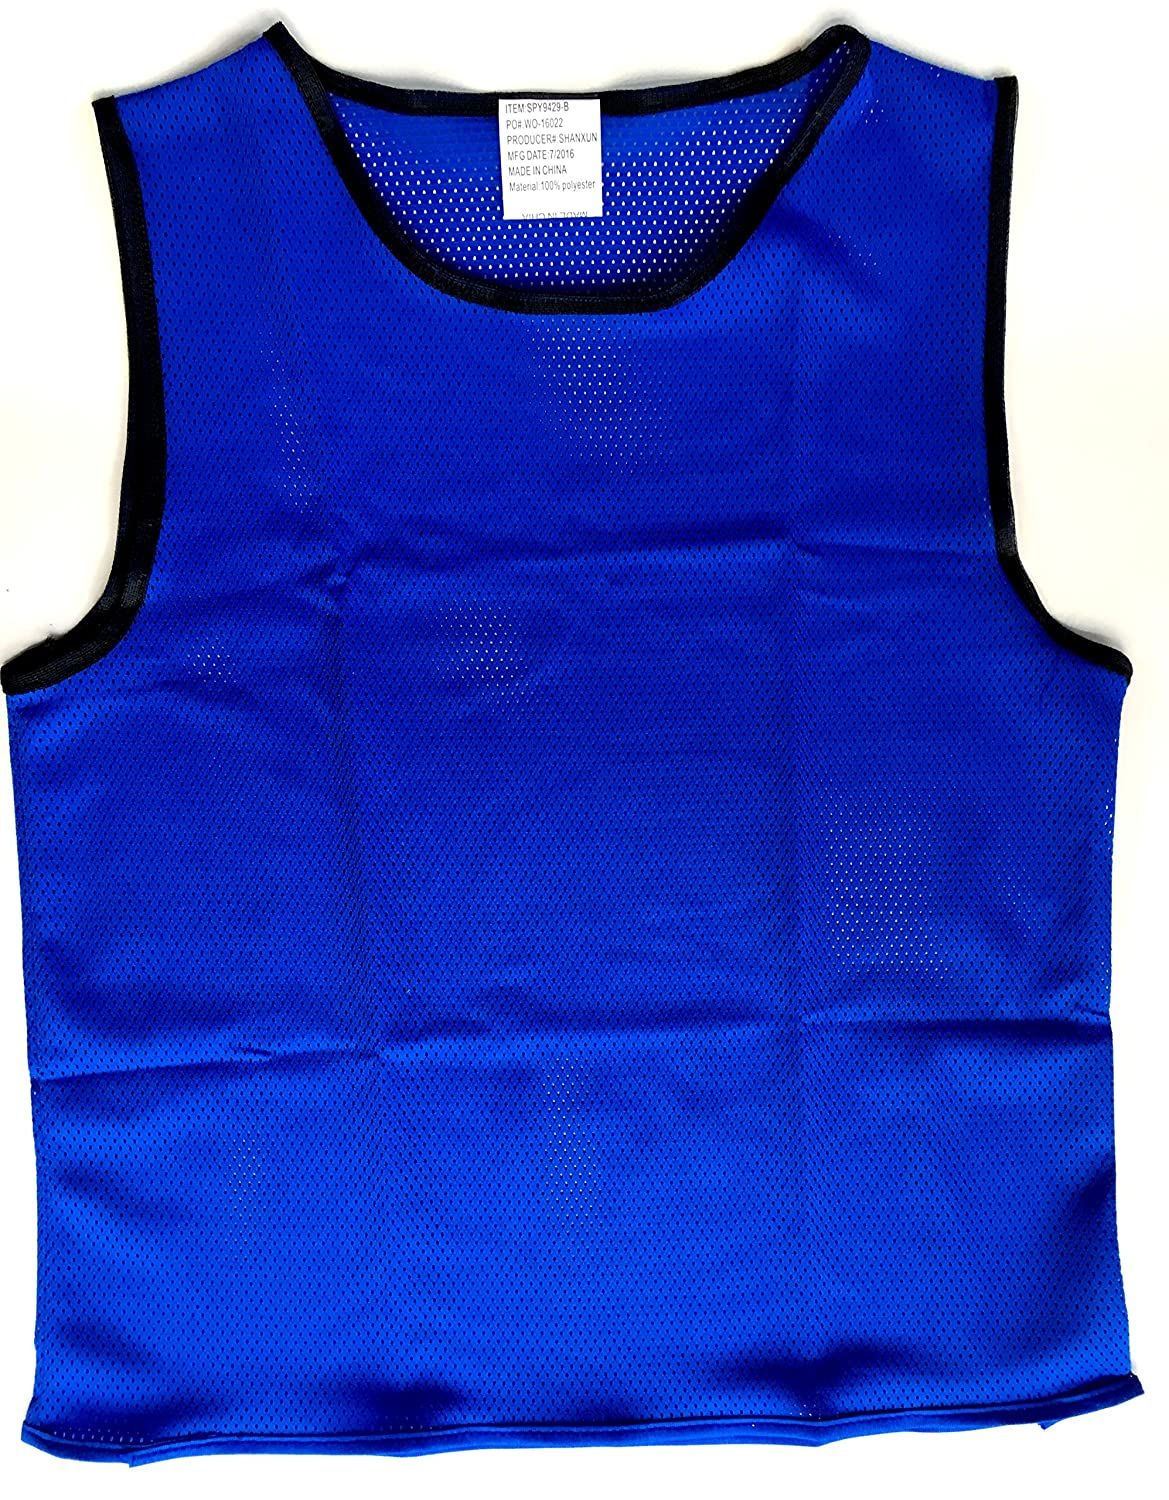 new arrival 46343 11e98 Youth Scrimmage Jerseys, Youth Scrimmage Training Vests for All Sports, by  Playscene (12 Pack)